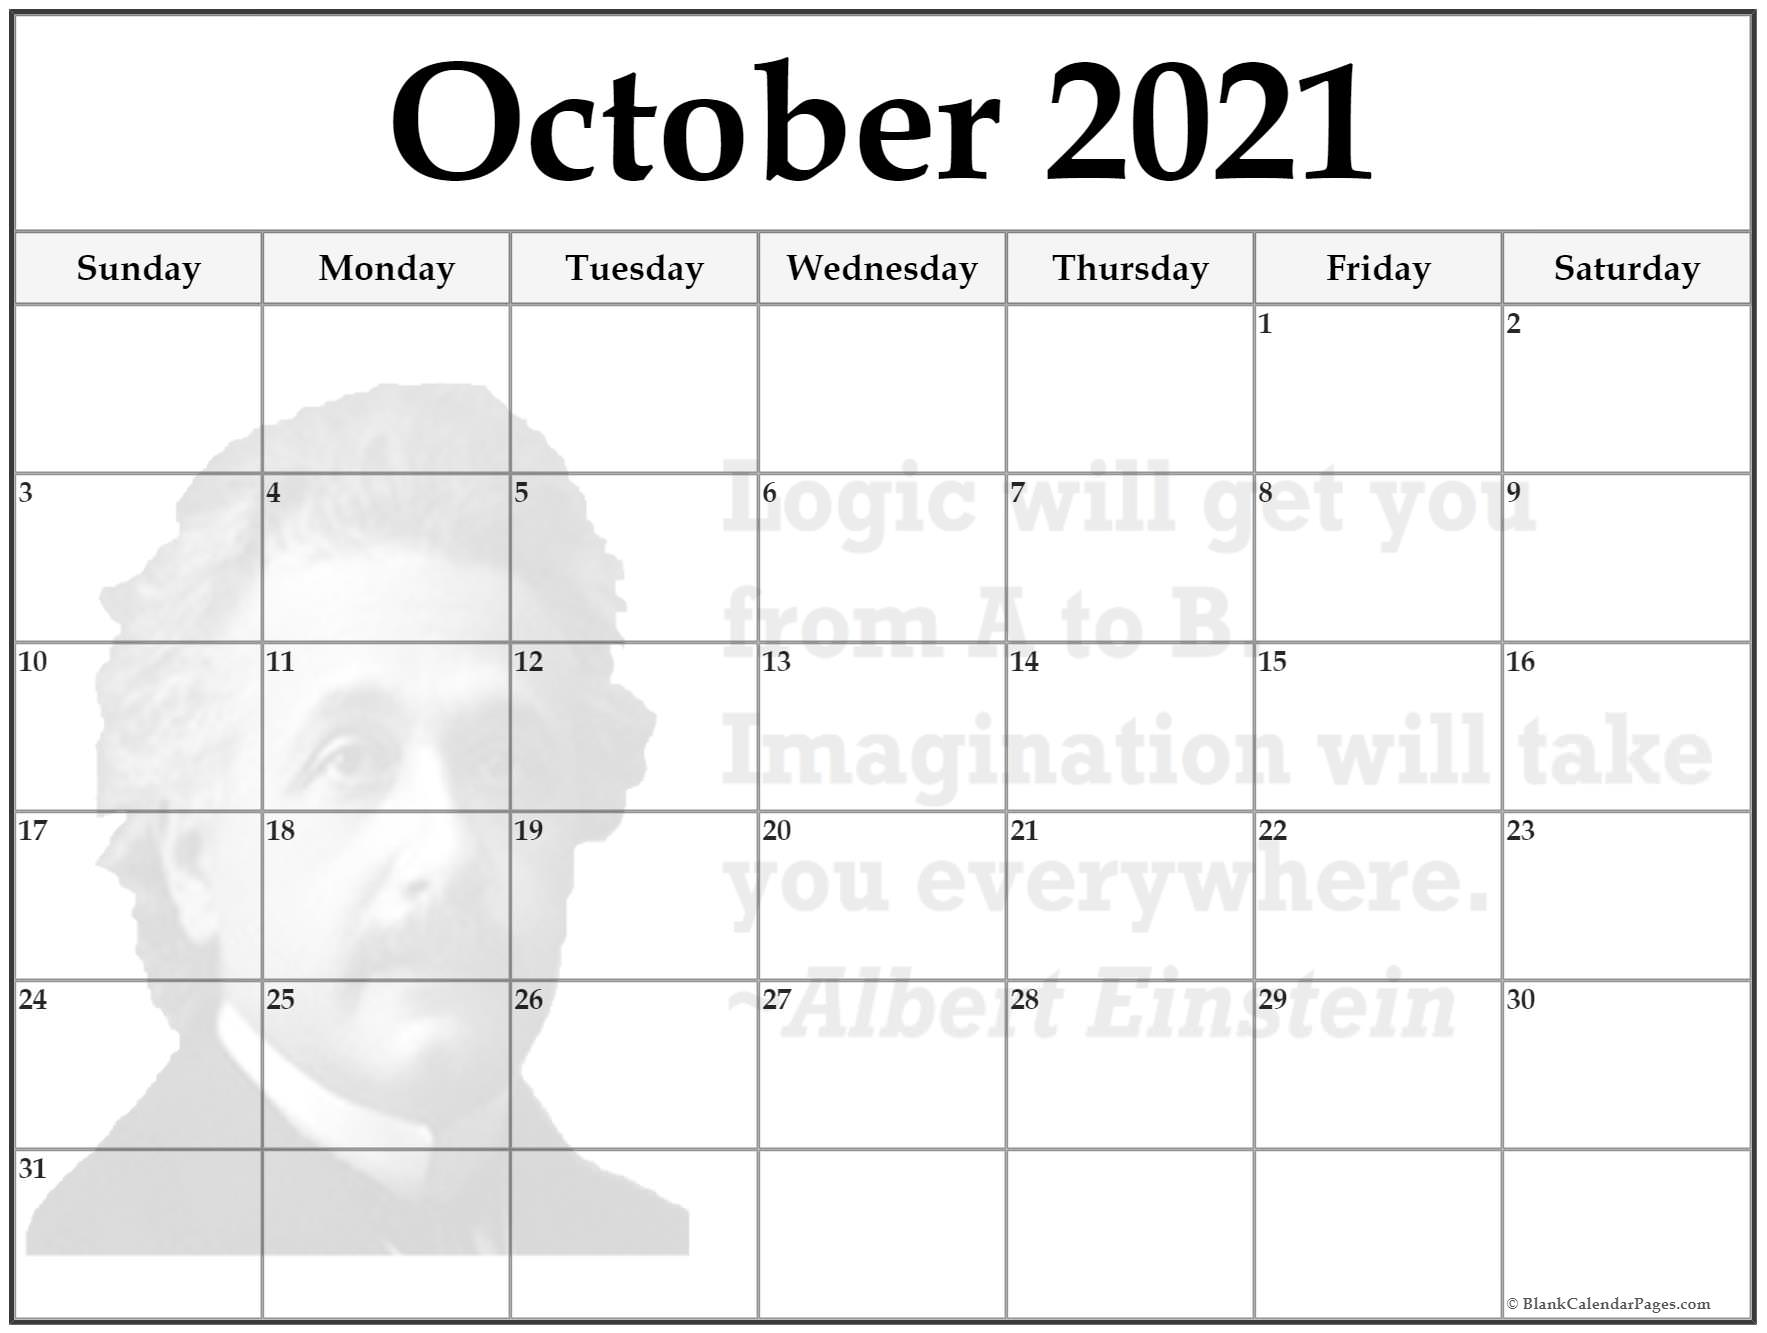 October calendar 2021Logic will get you from A to B. Imagination will take you everywhere ~Albert Einstein